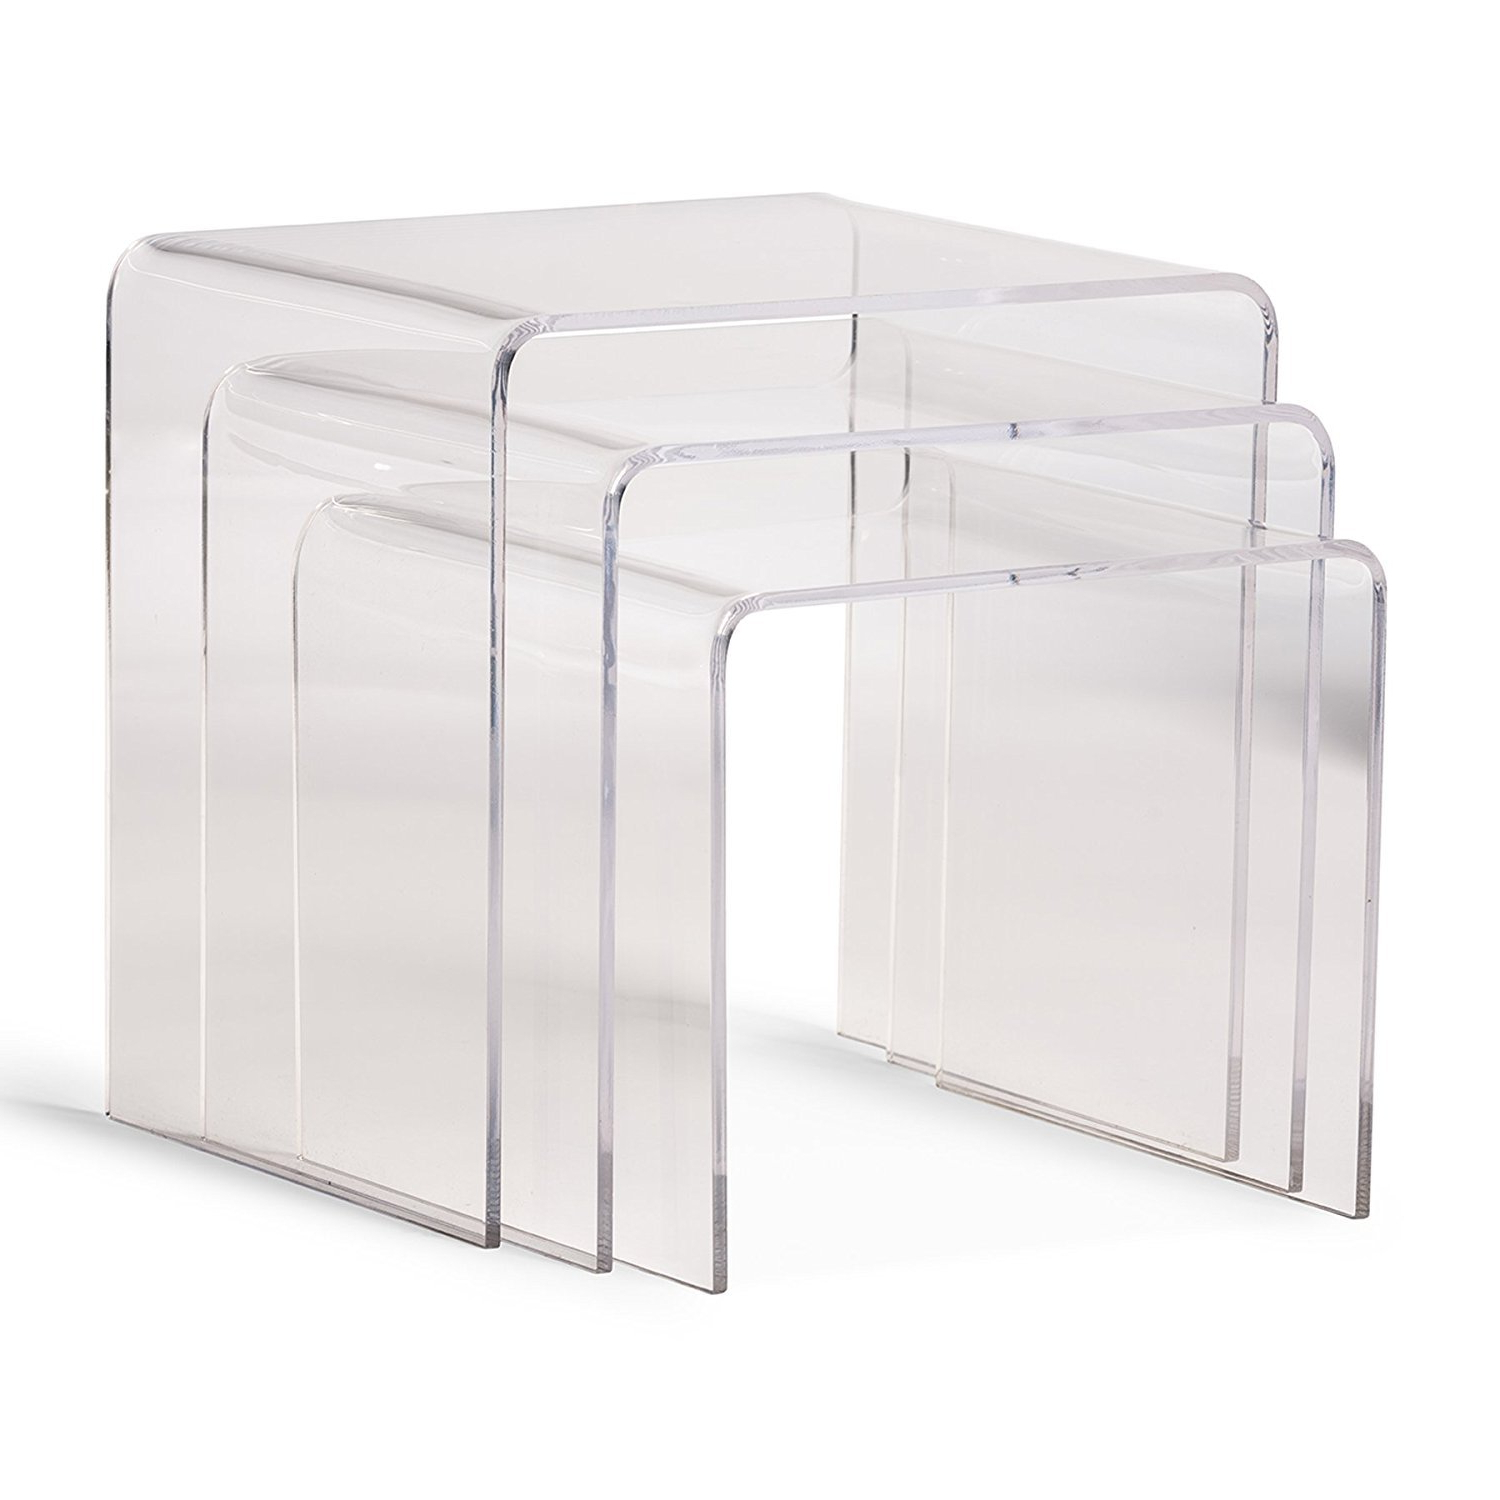 Old Acrylic Side Table Cb2 Peekaboo Lucite Coffe Table Lucite Trunk With Regard To Newest Peekaboo Acrylic Coffee Tables (Gallery 14 of 20)